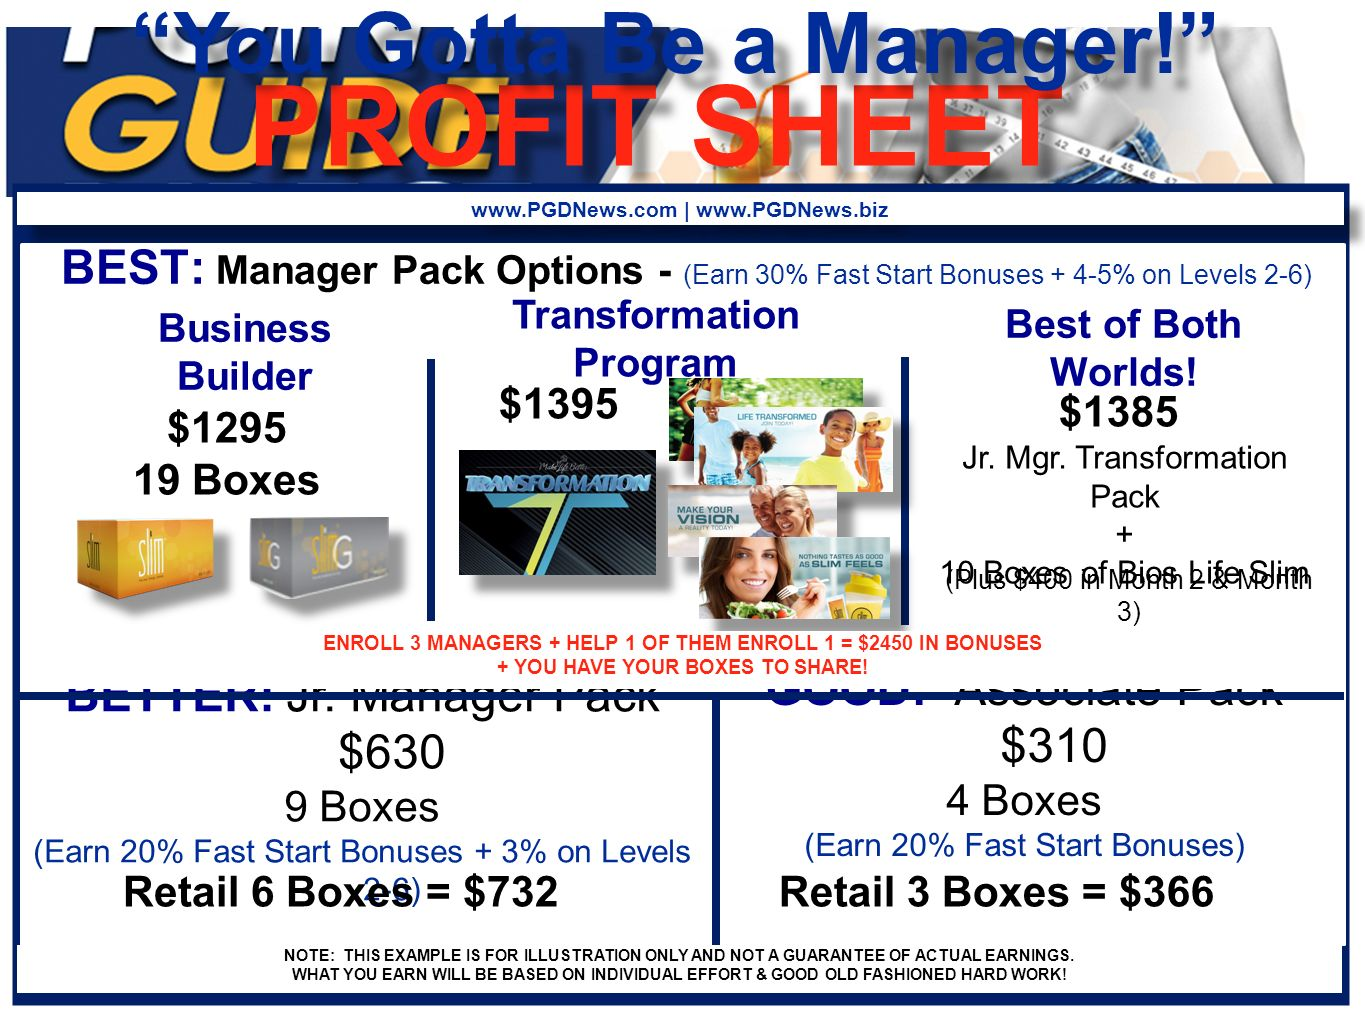 PROFIT SHEET You Gotta Be a Manager. www.PGDNews.com | www.PGDNews.biz BETTER: Jr.